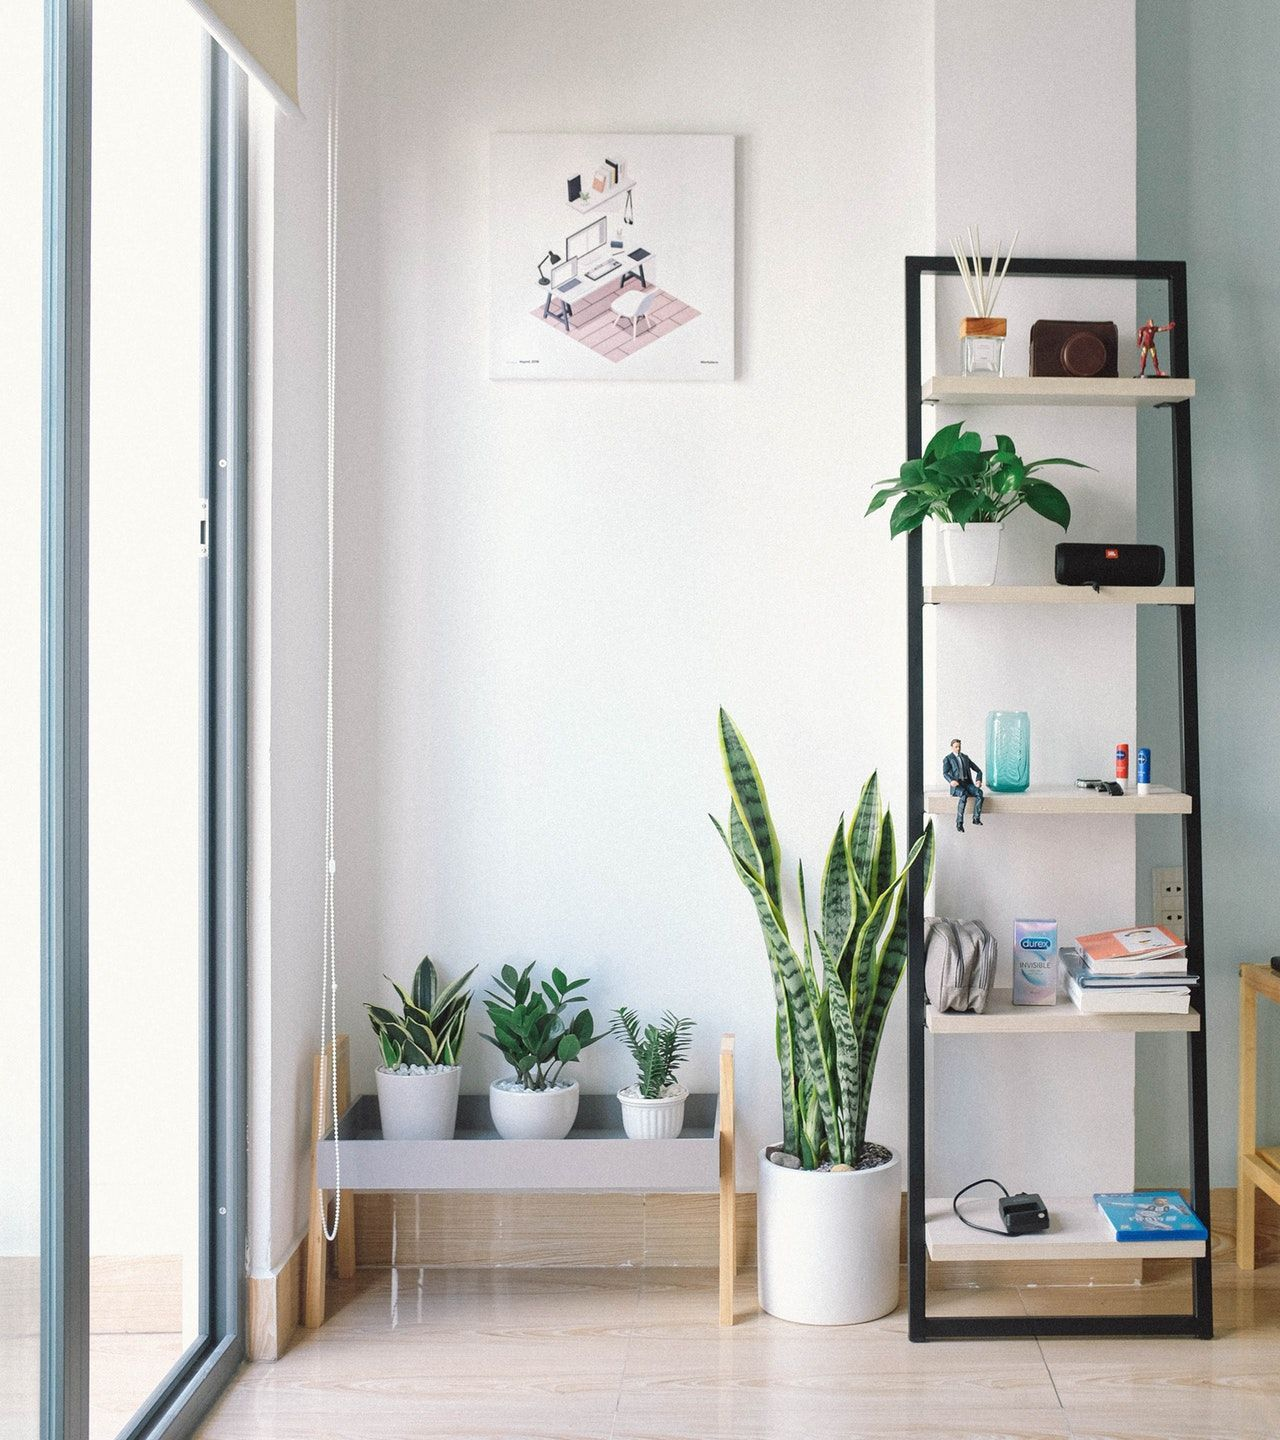 20 Small Dining Room Ideas On A Budget: Tips On How To Decorate A Living Room On A Student Budget